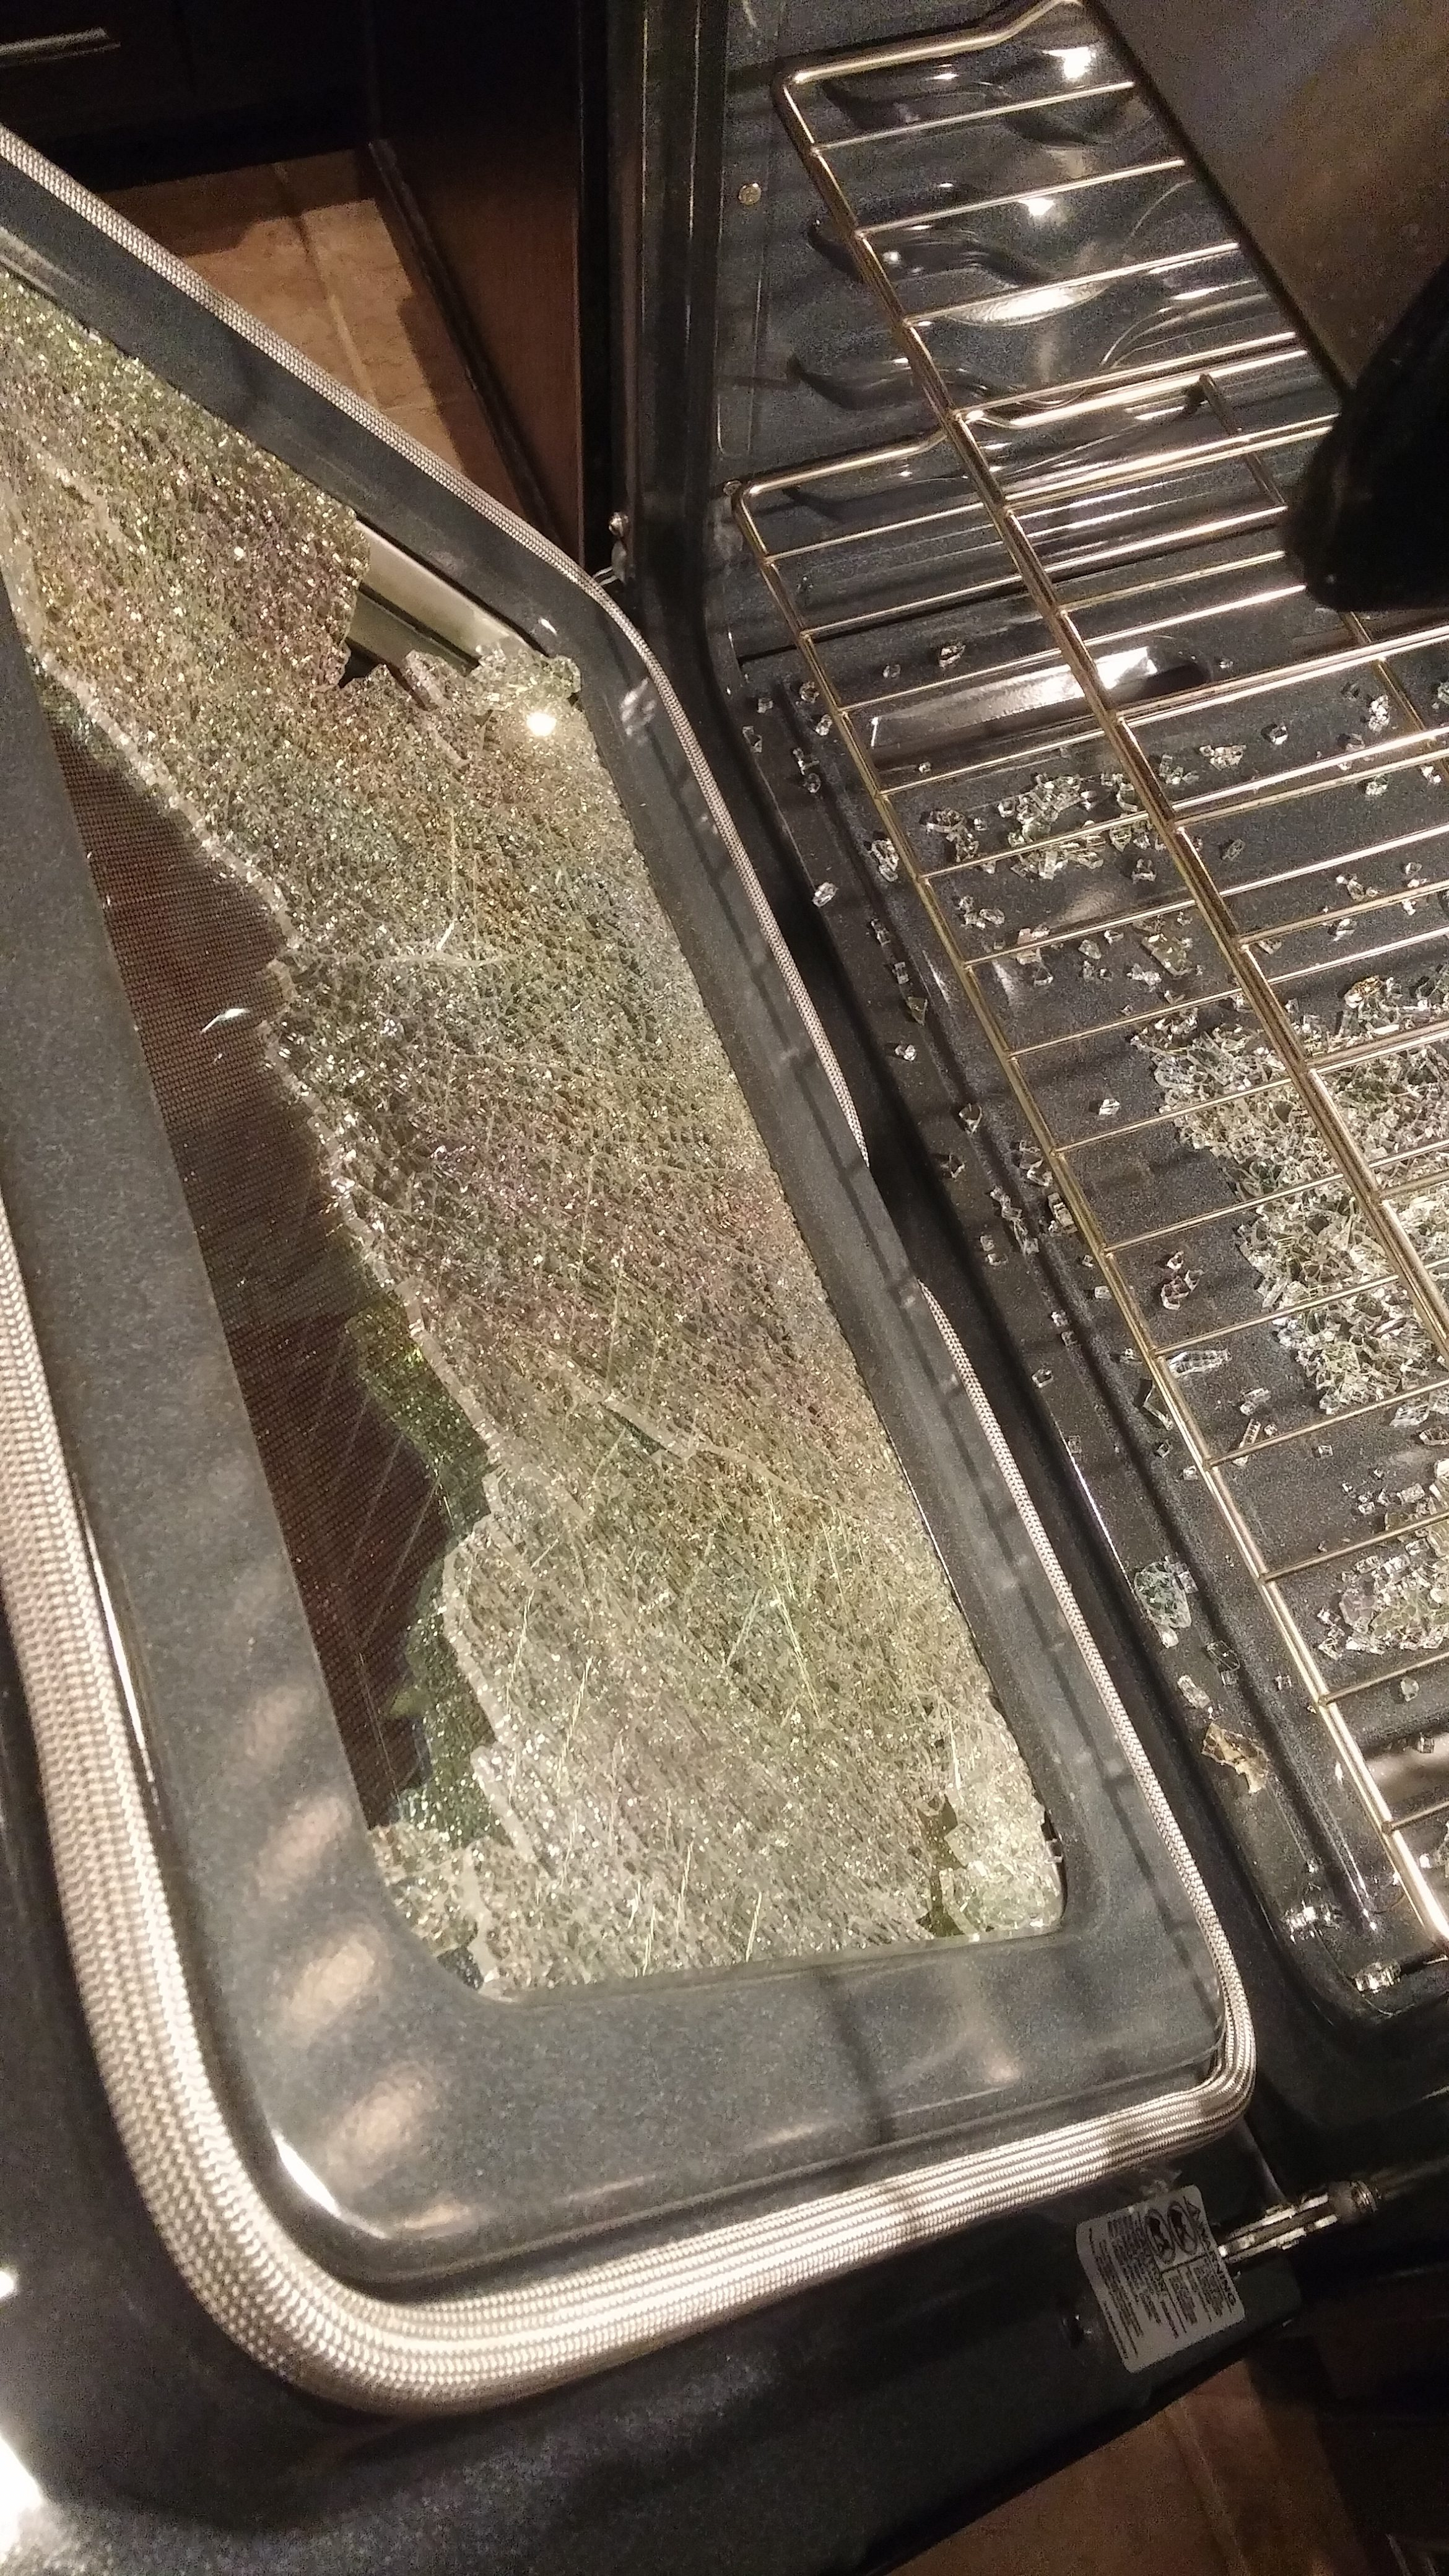 Can parts be purchased for old GE ovens?